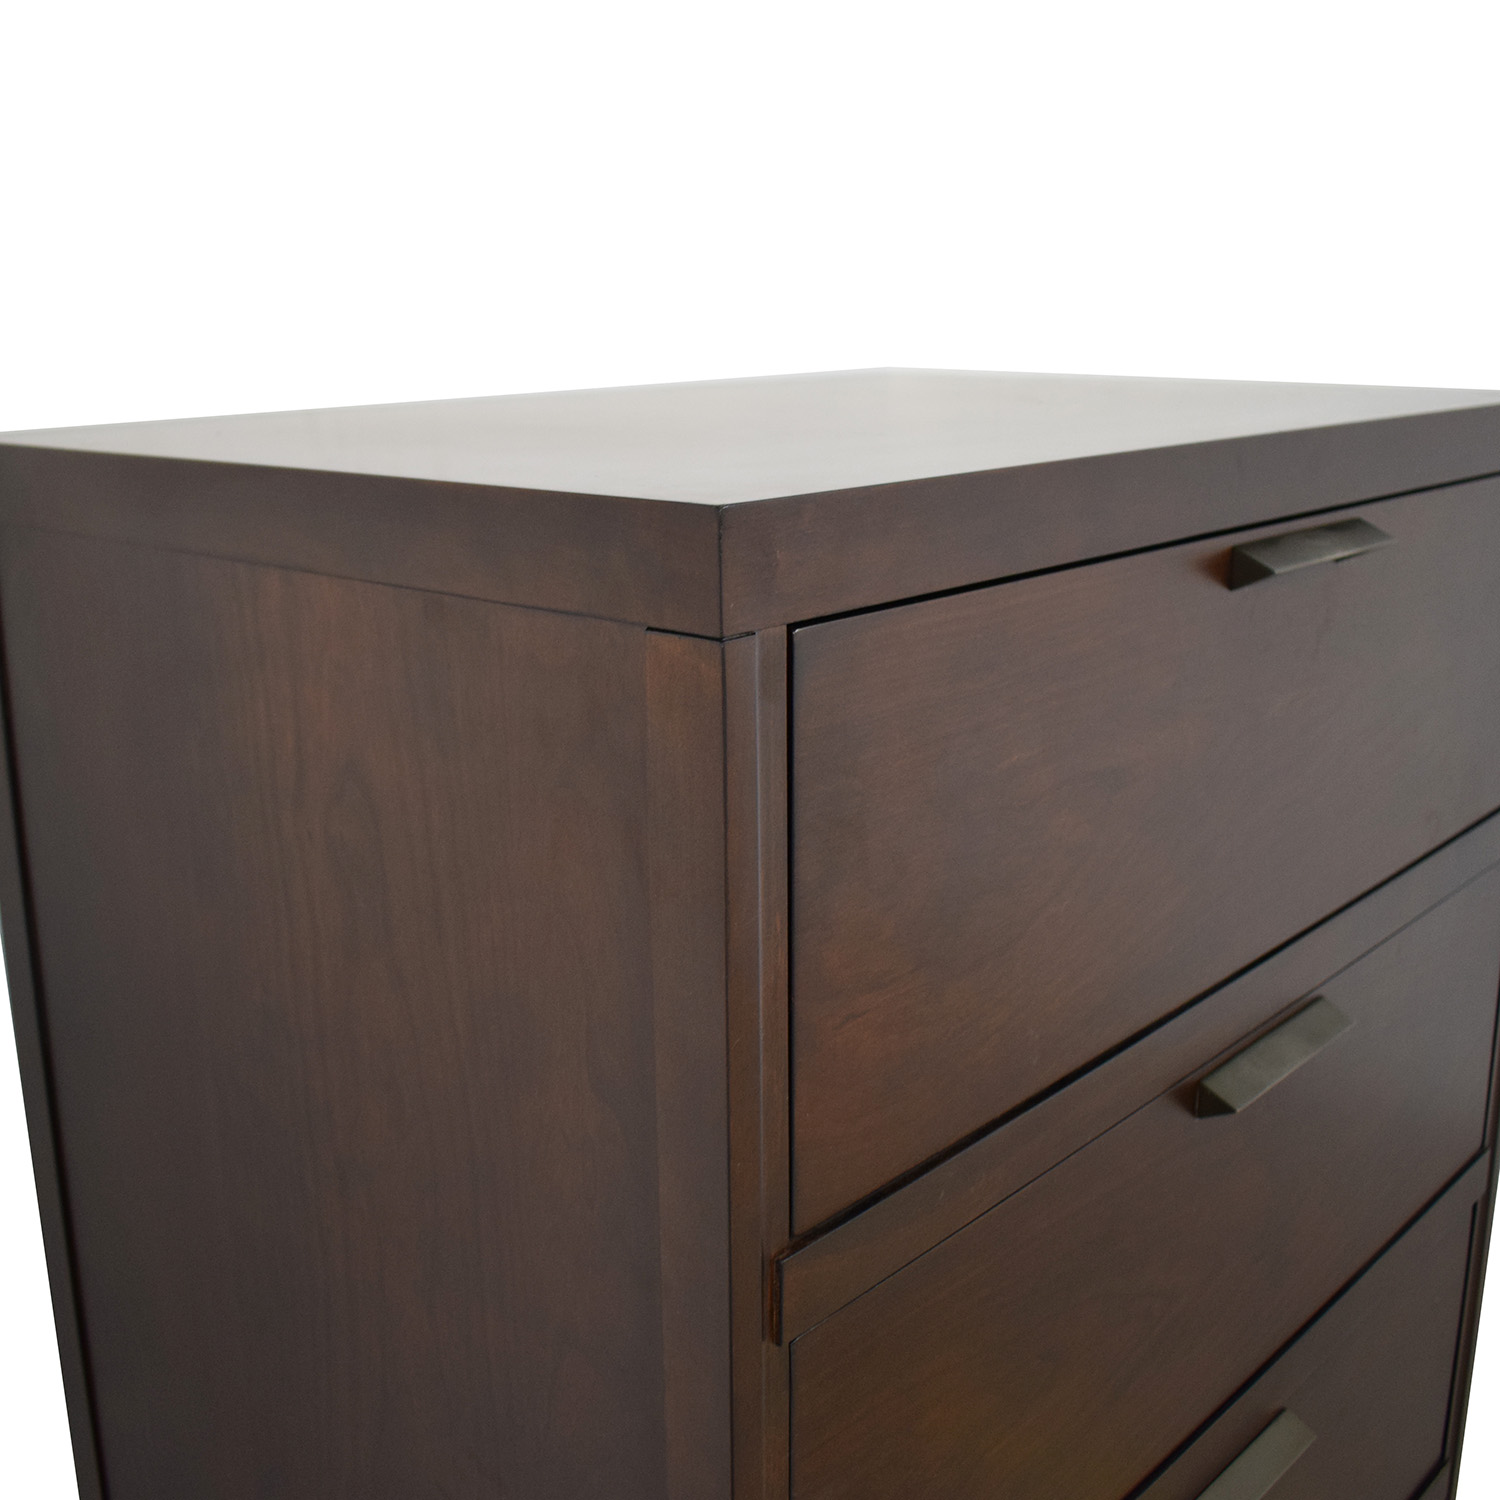 Crate & Barrel Five-Drawer Chest / Dressers